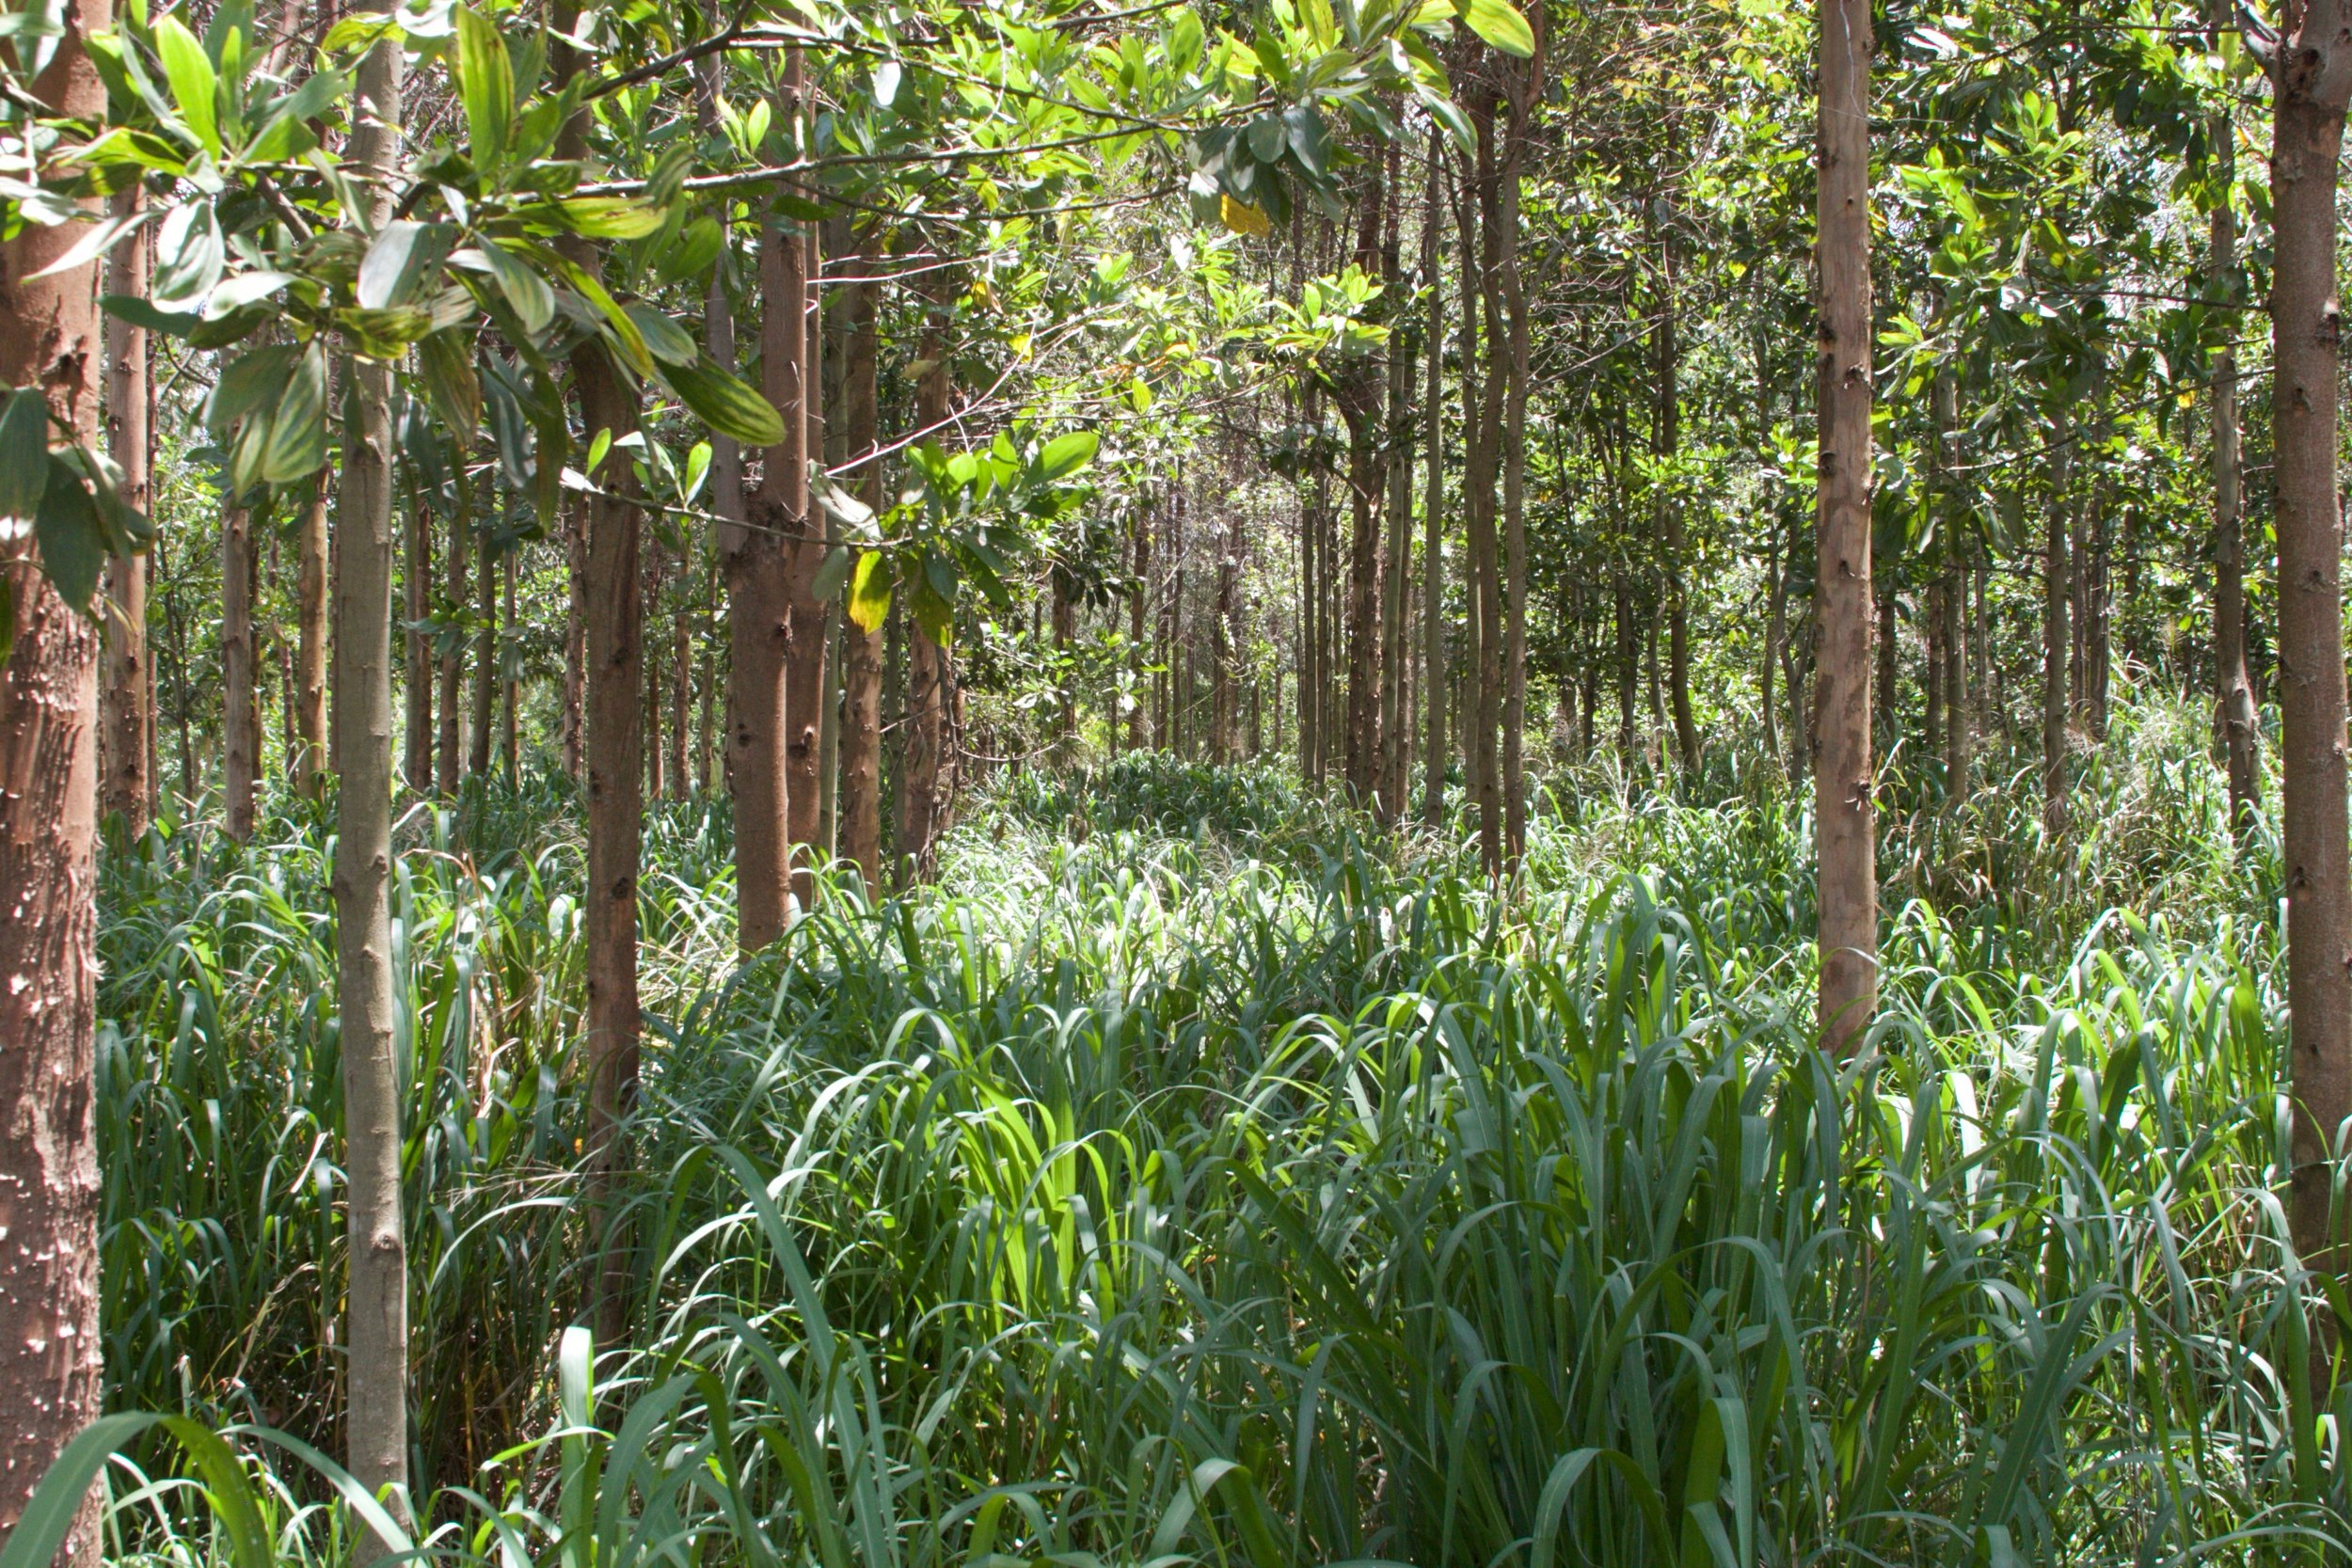 This is the understory of the eucalyptus plantation pictured in the satellite image above. In relatively deep shade, grass growth is still substantial. This undoubtedly speaks to the viability of silvopasture in the tropics.